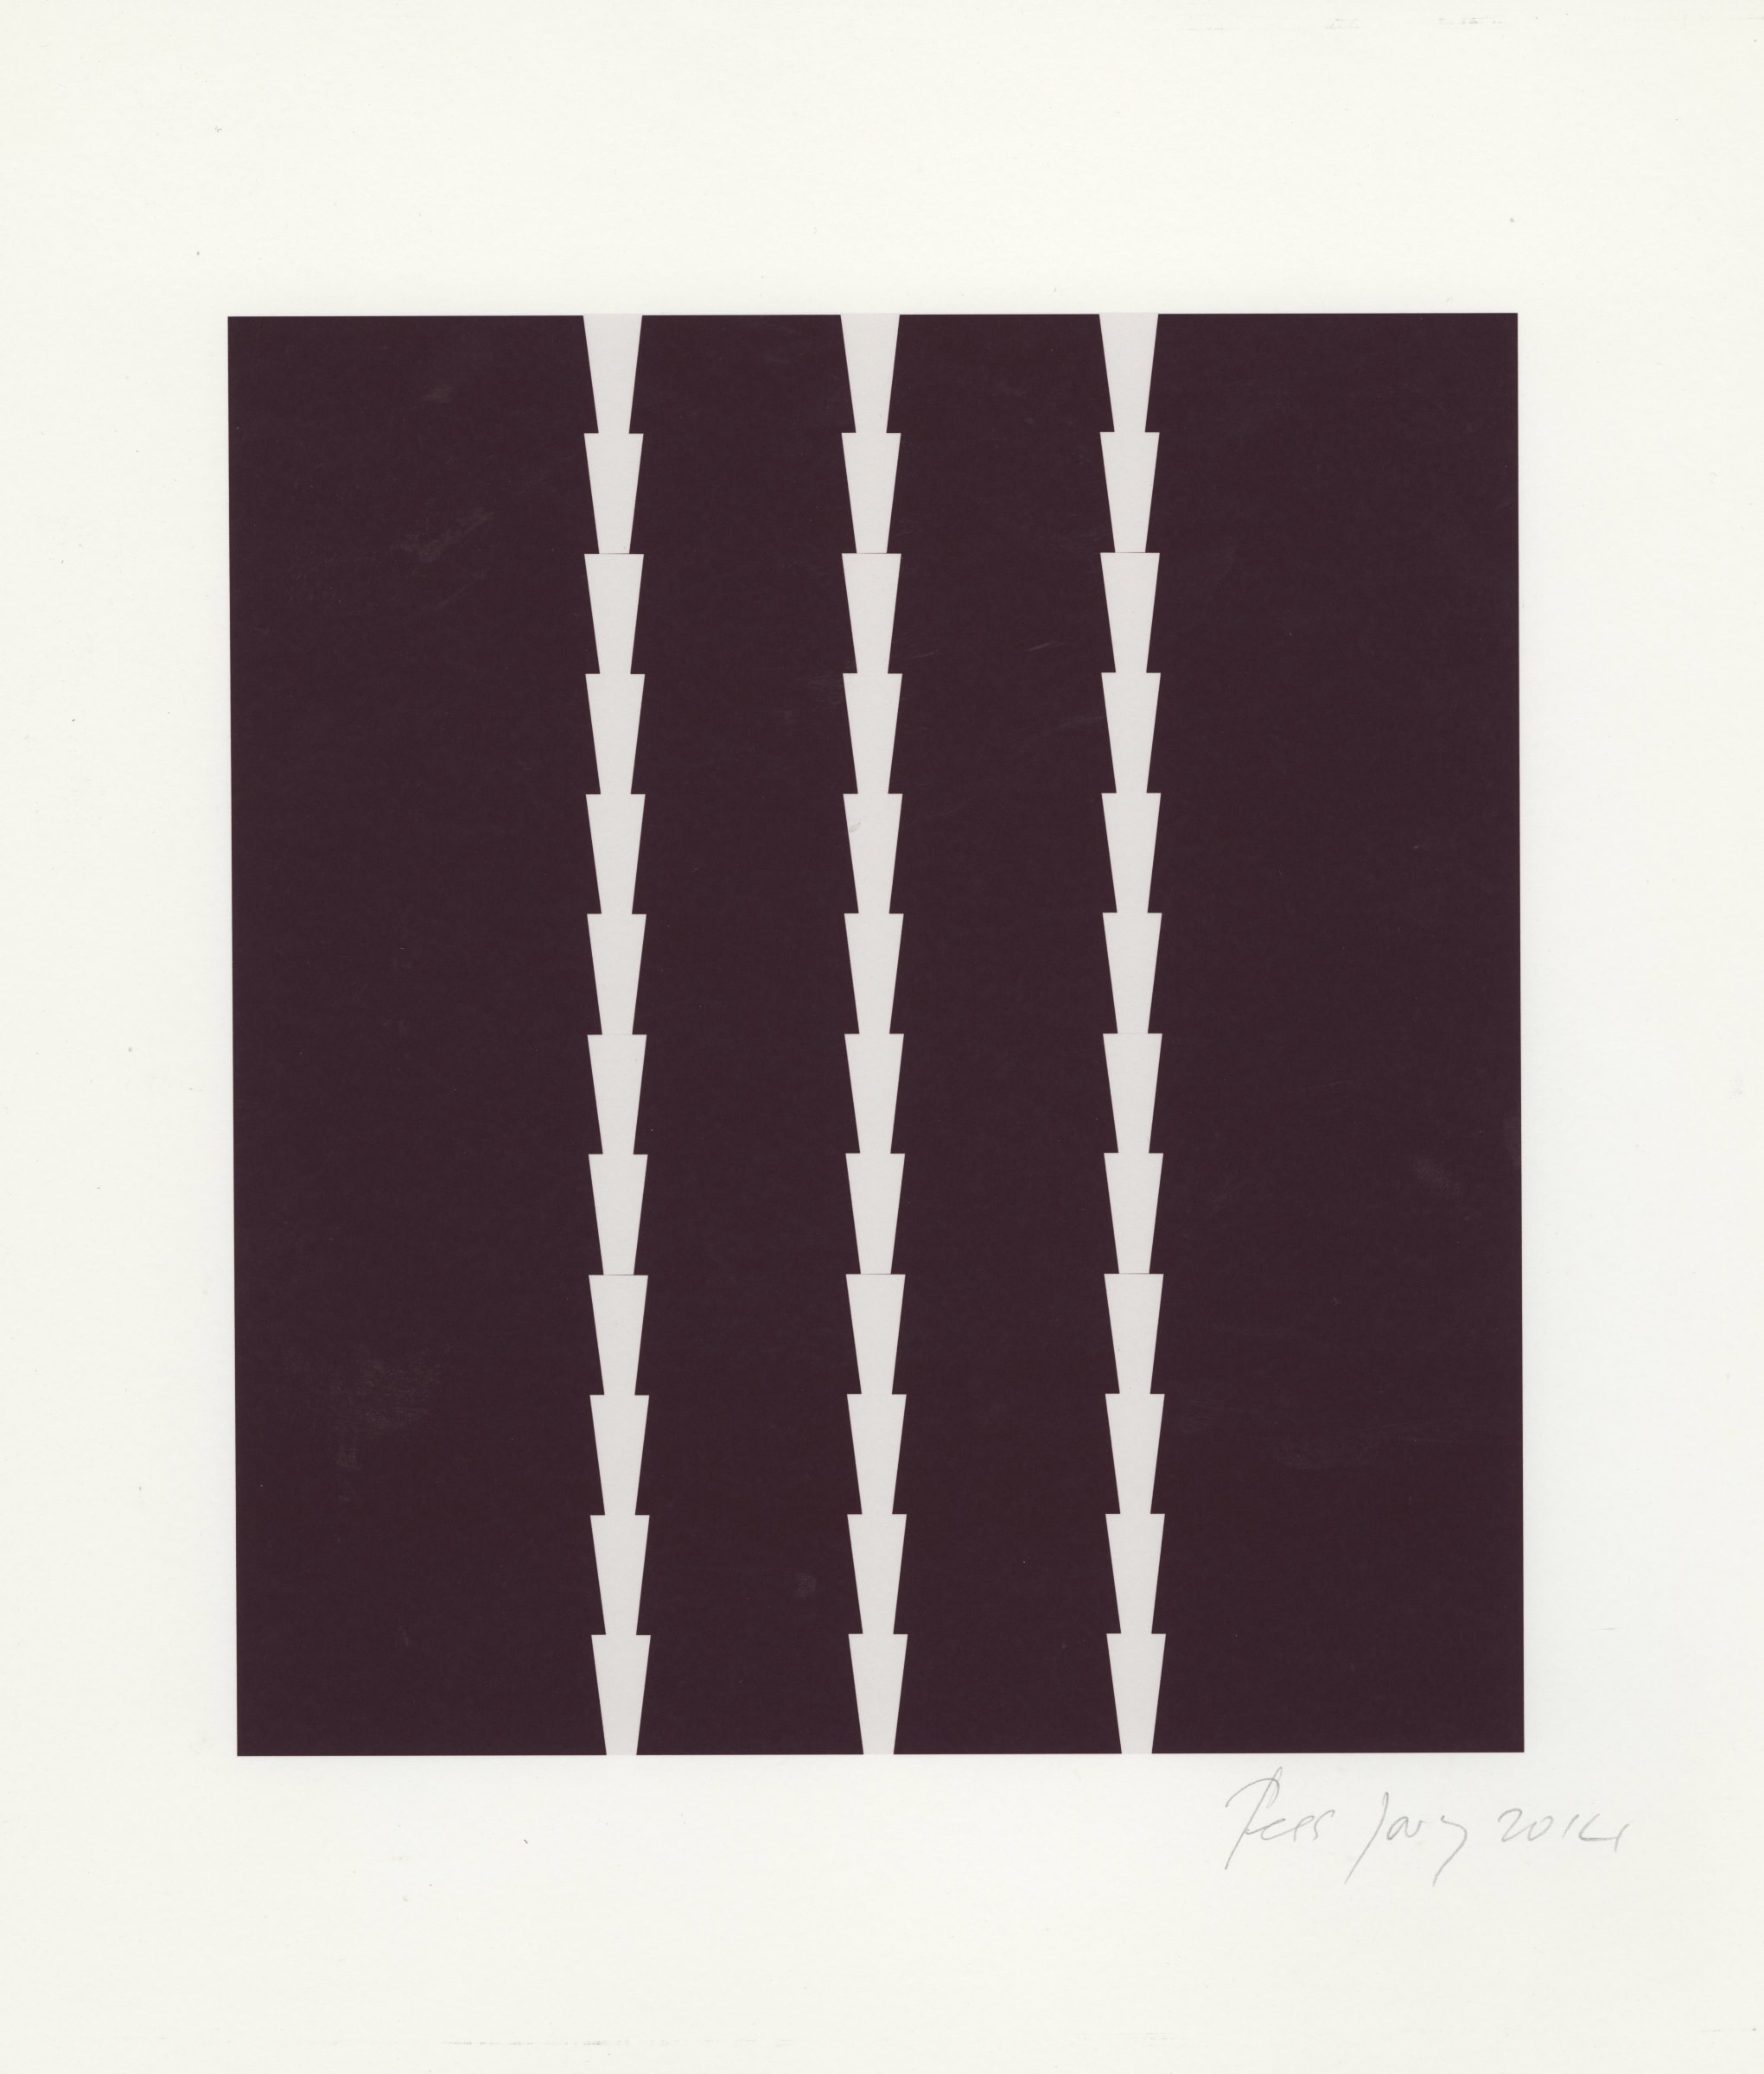 "<span class=""link fancybox-details-link""><a href=""/artists/91-tess-jaray/works/1574-tess-jaray-towards-thorns-series-2014/"">View Detail Page</a></span><div class=""artist""><strong>Tess Jaray</strong></div> <div class=""title""><em>Towards 'Thorns' series</em>, 2014</div> <div class=""medium"">Unique inkjet on paper</div> <div class=""dimensions"">35.2 x 29.6cm</div>"